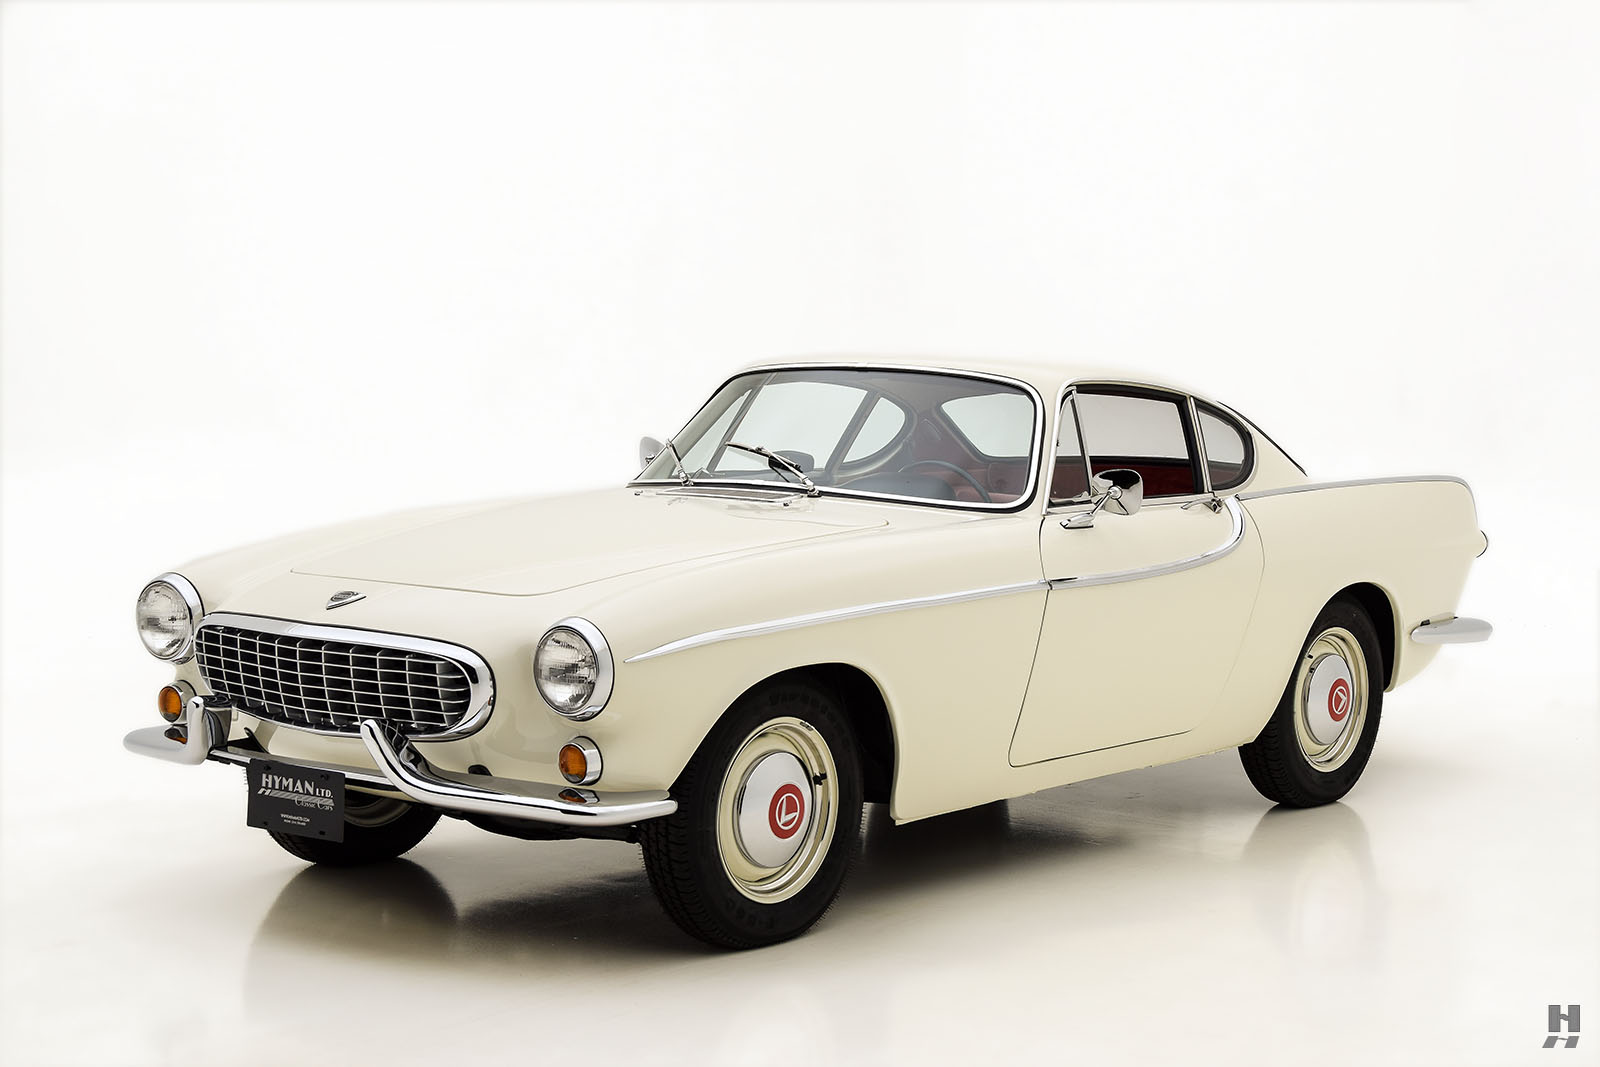 1964 Volvo P1800 S Coupe | Hyman Ltd. Classic Cars